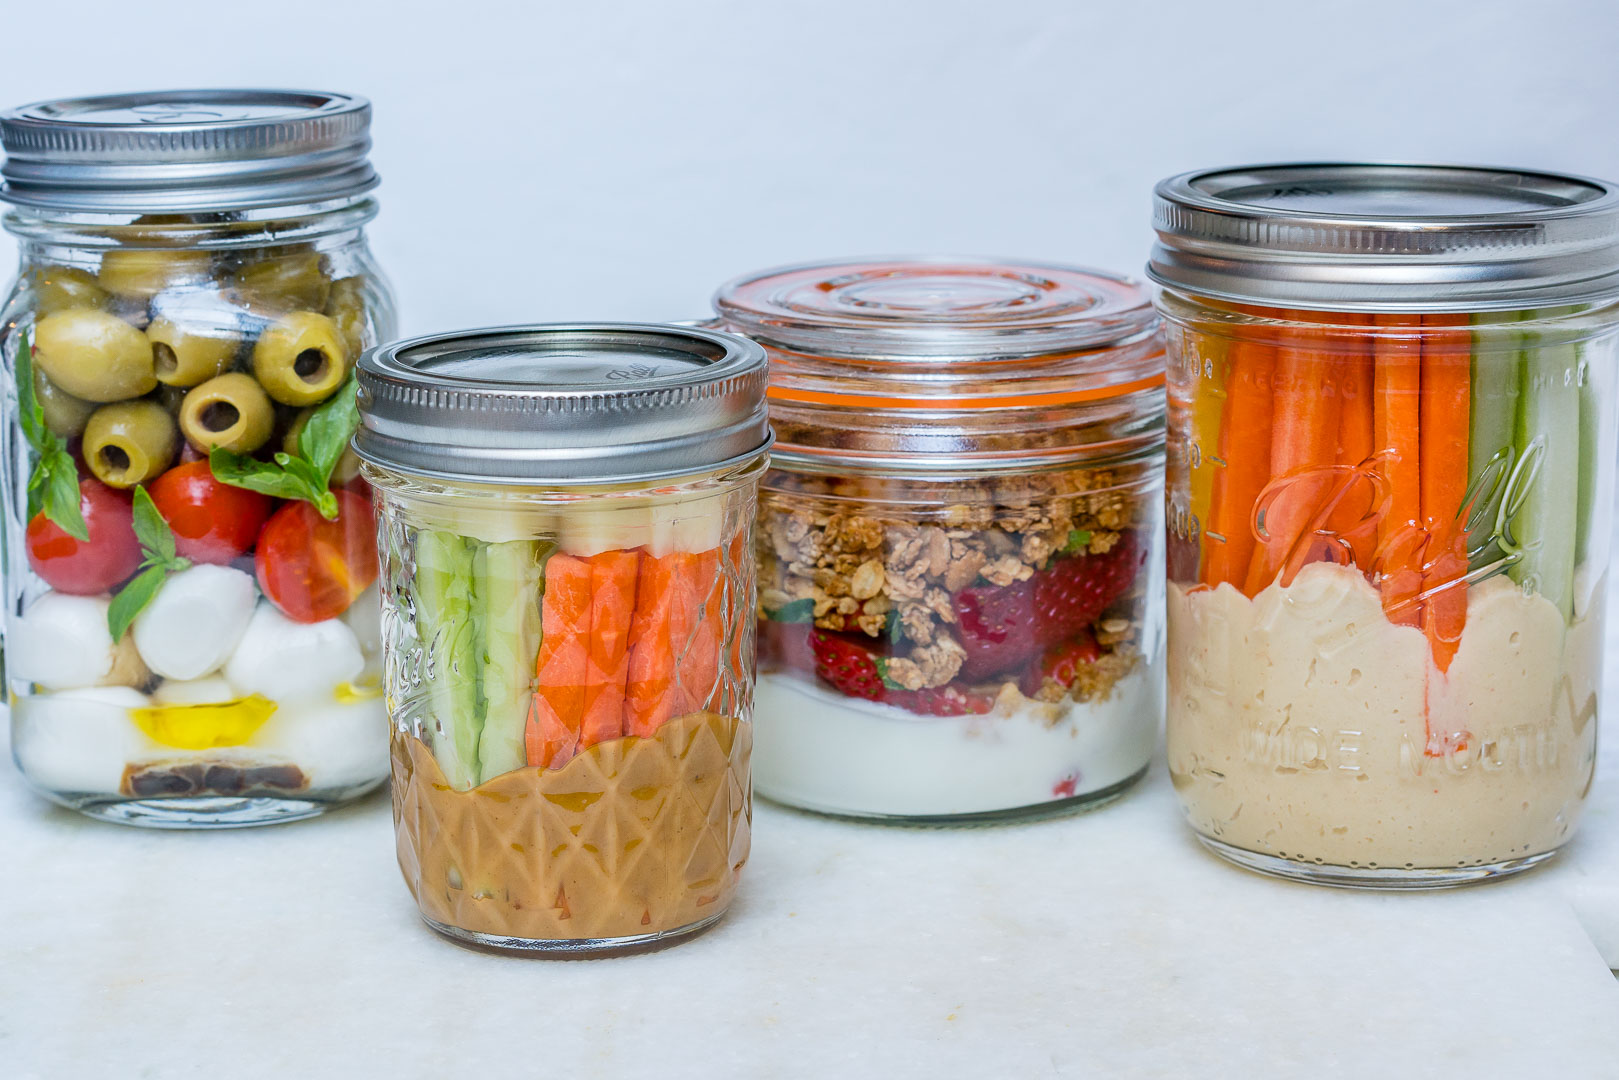 Mason Jar Snacks 4 Ways To Eat Clean Prep Ahead Clean Food Crush